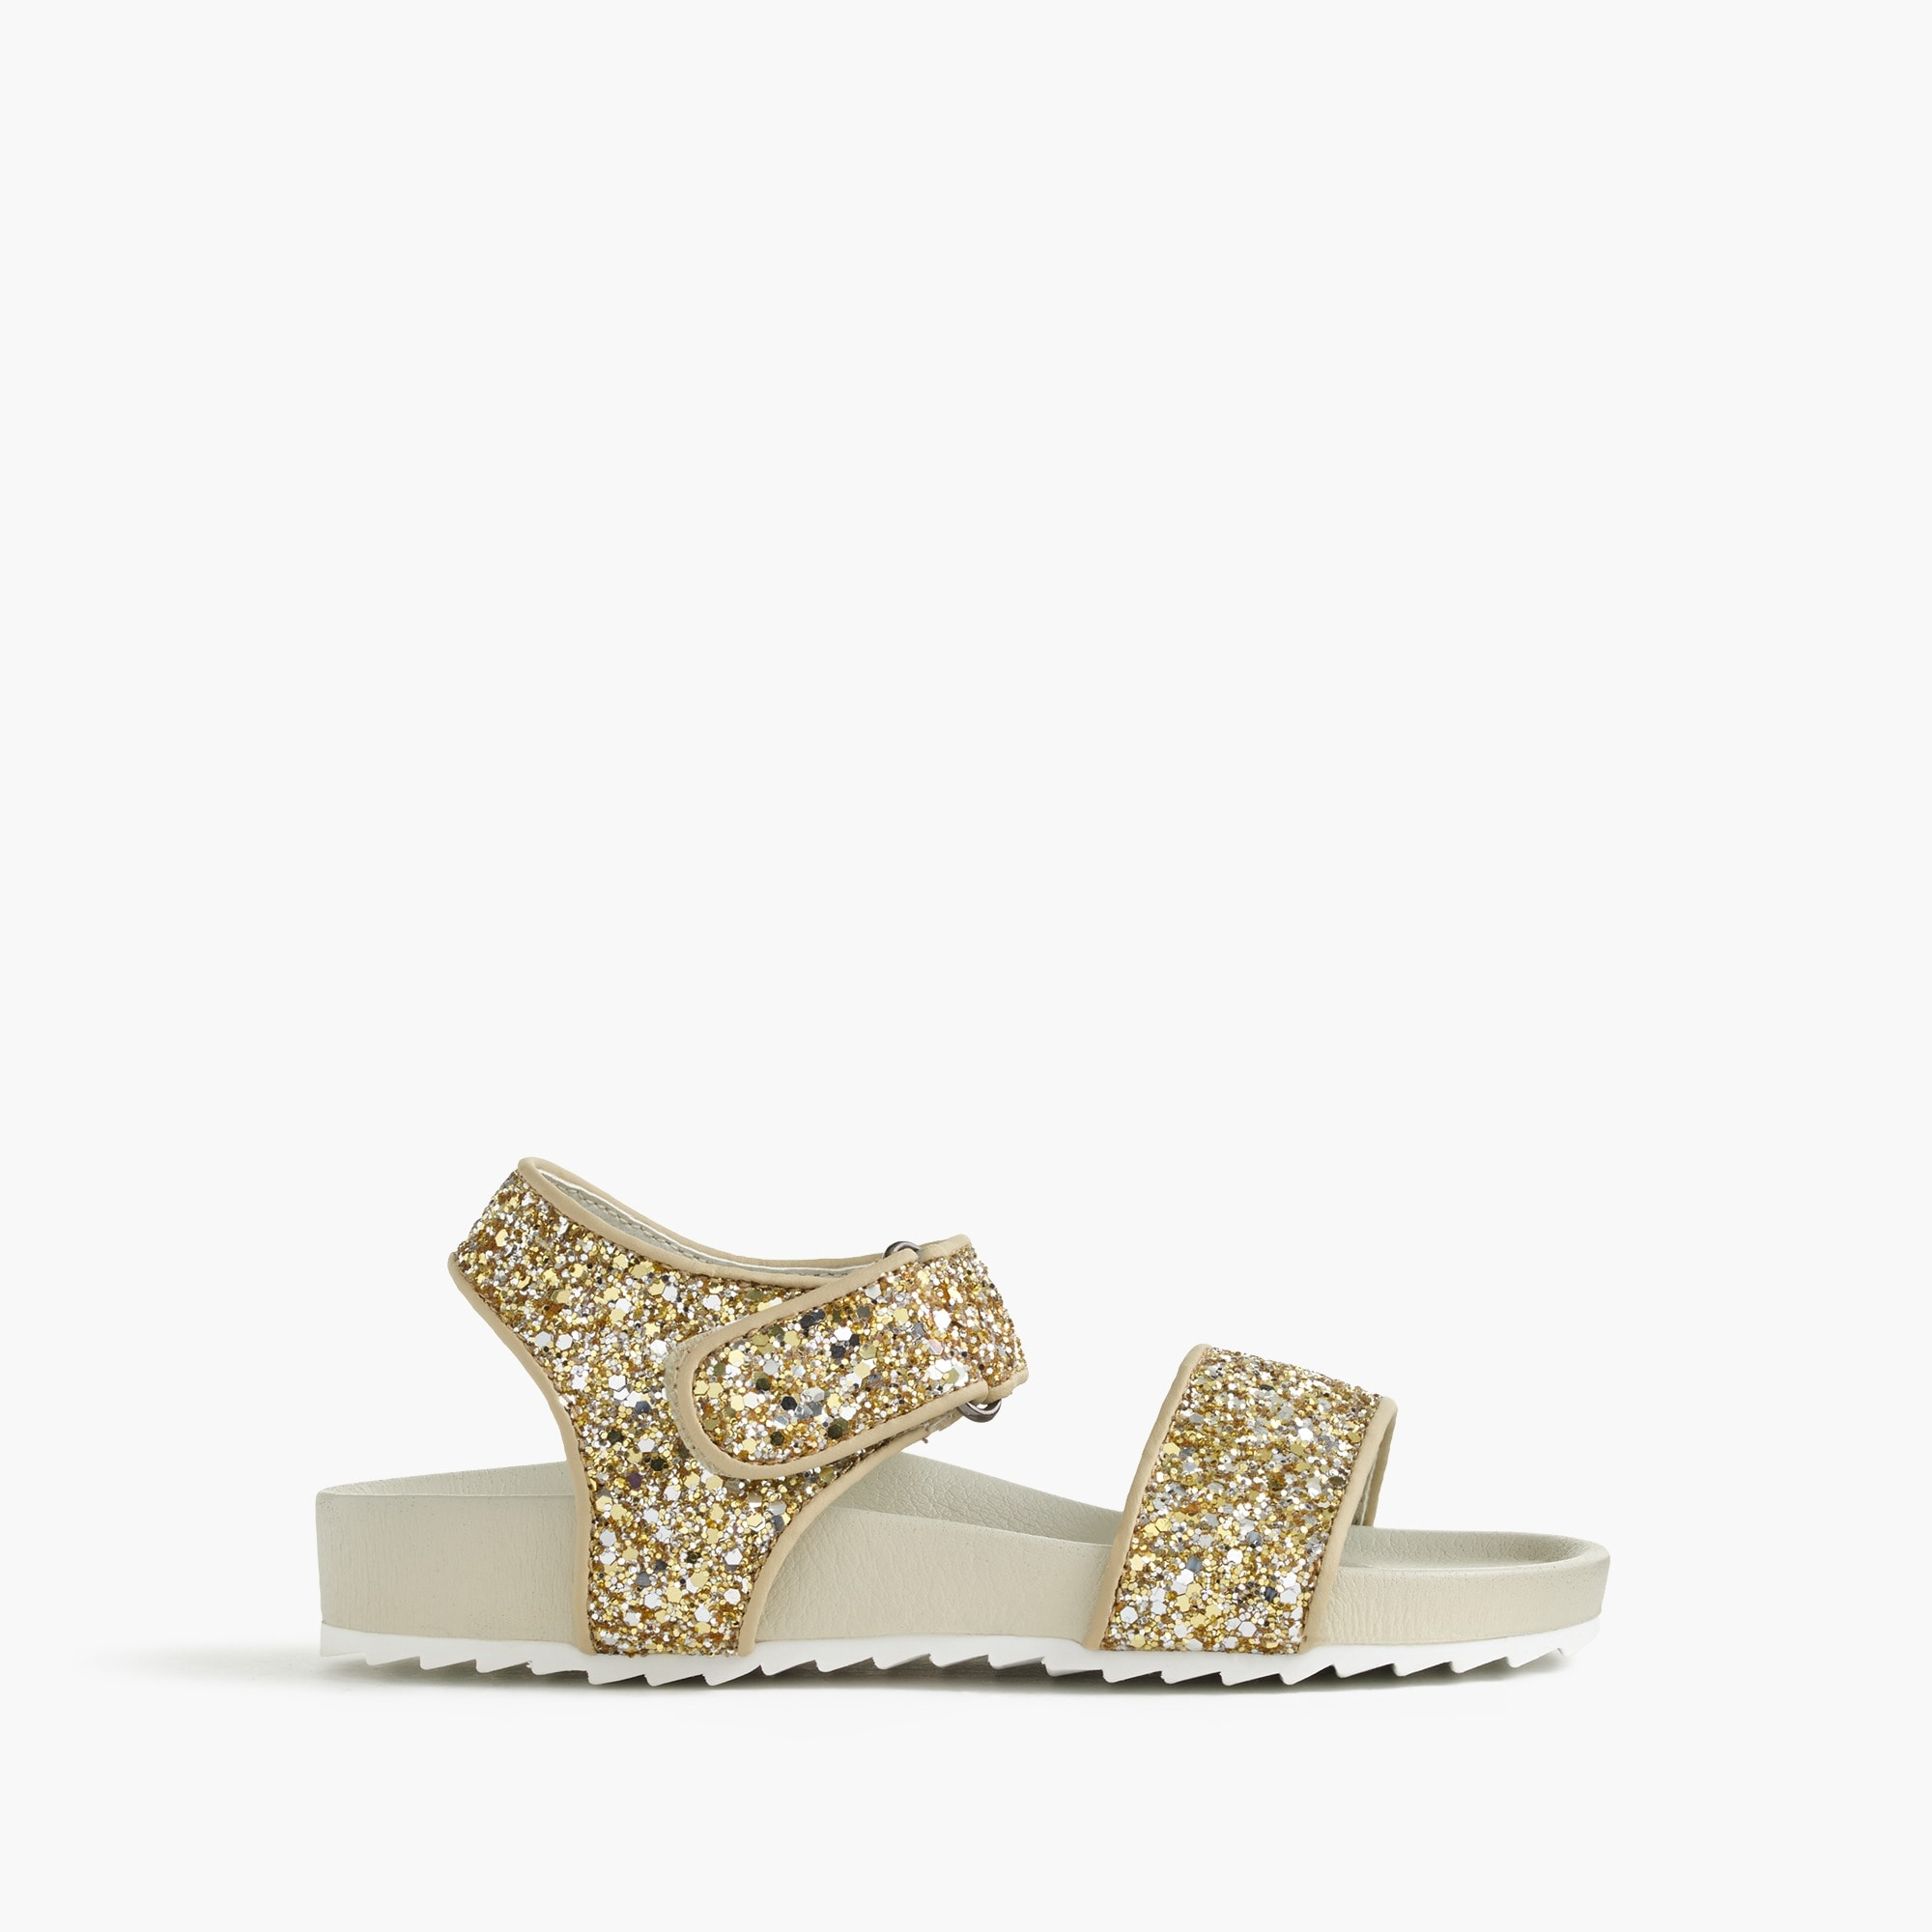 Image 1 for Girls' glitter slide sandals